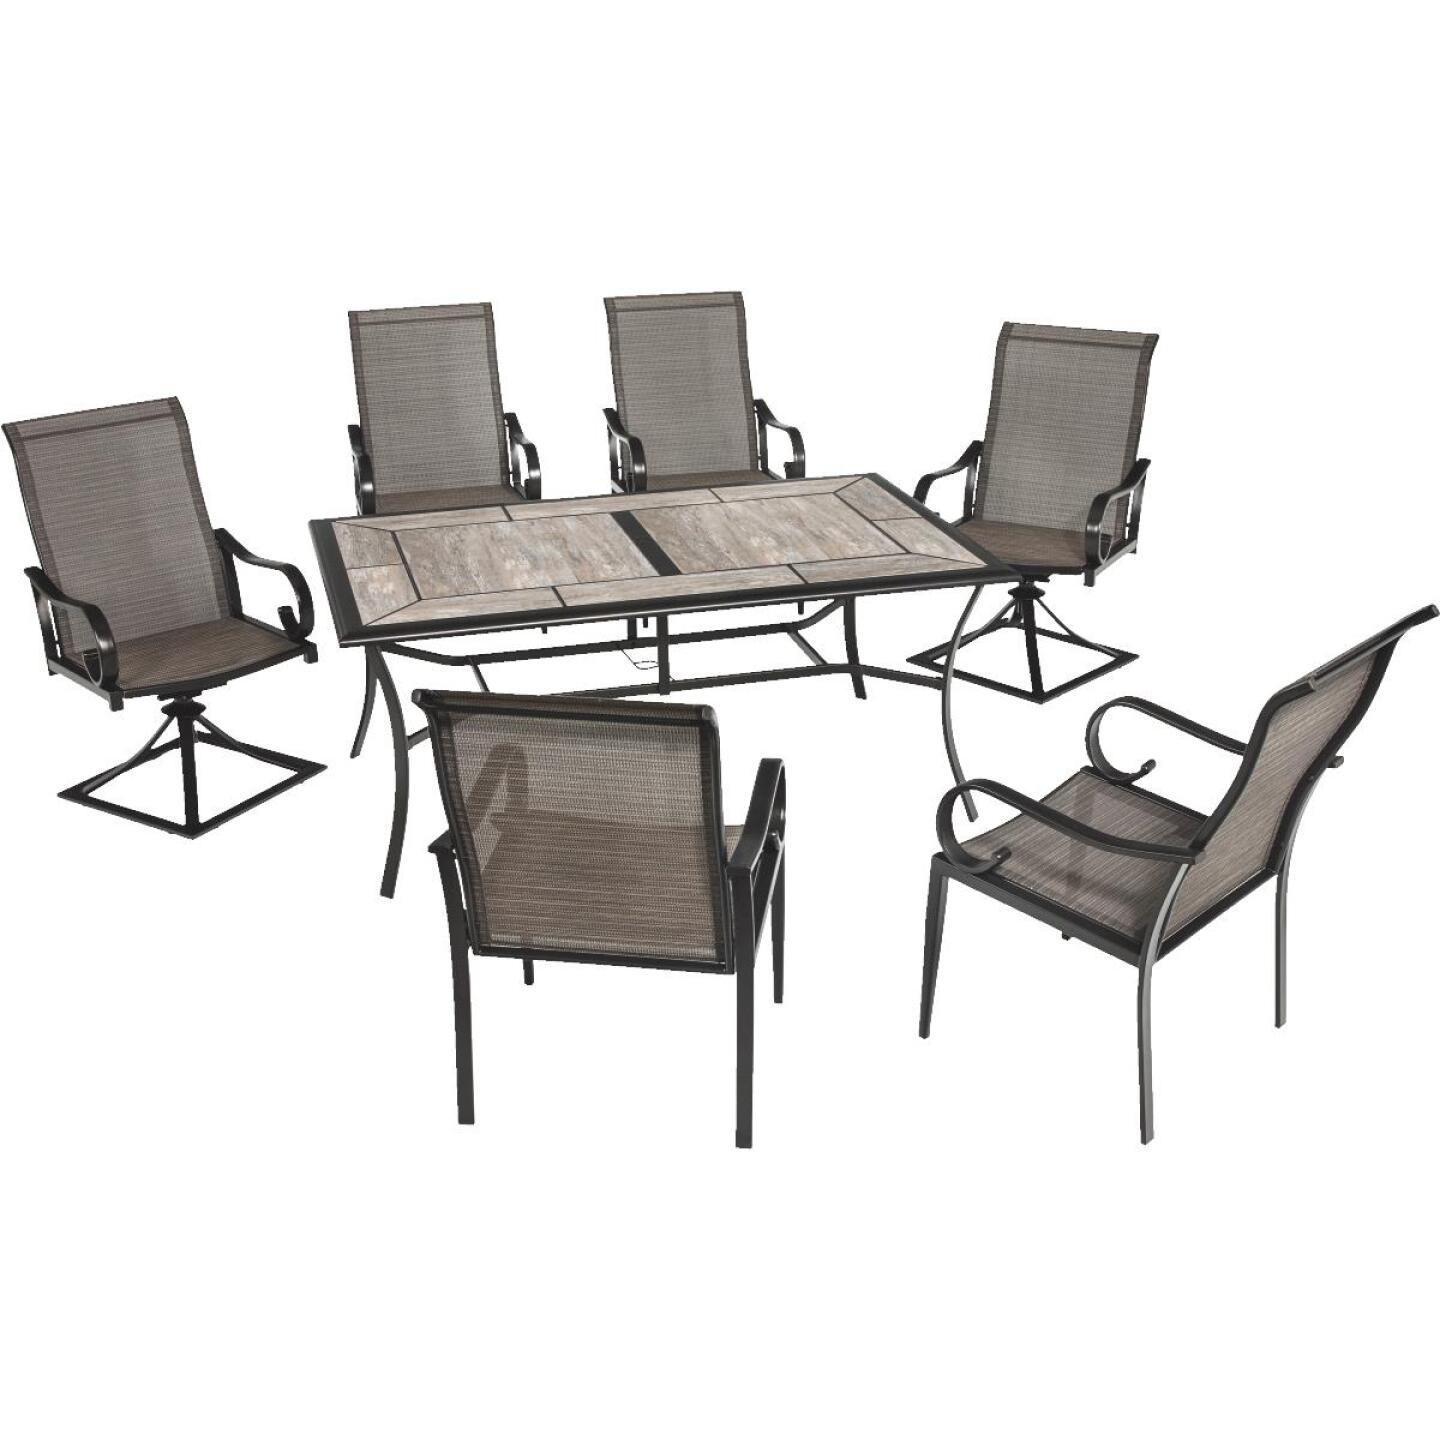 Outdoor Expressions Berkshire 7-Piece Dining Set Image 129